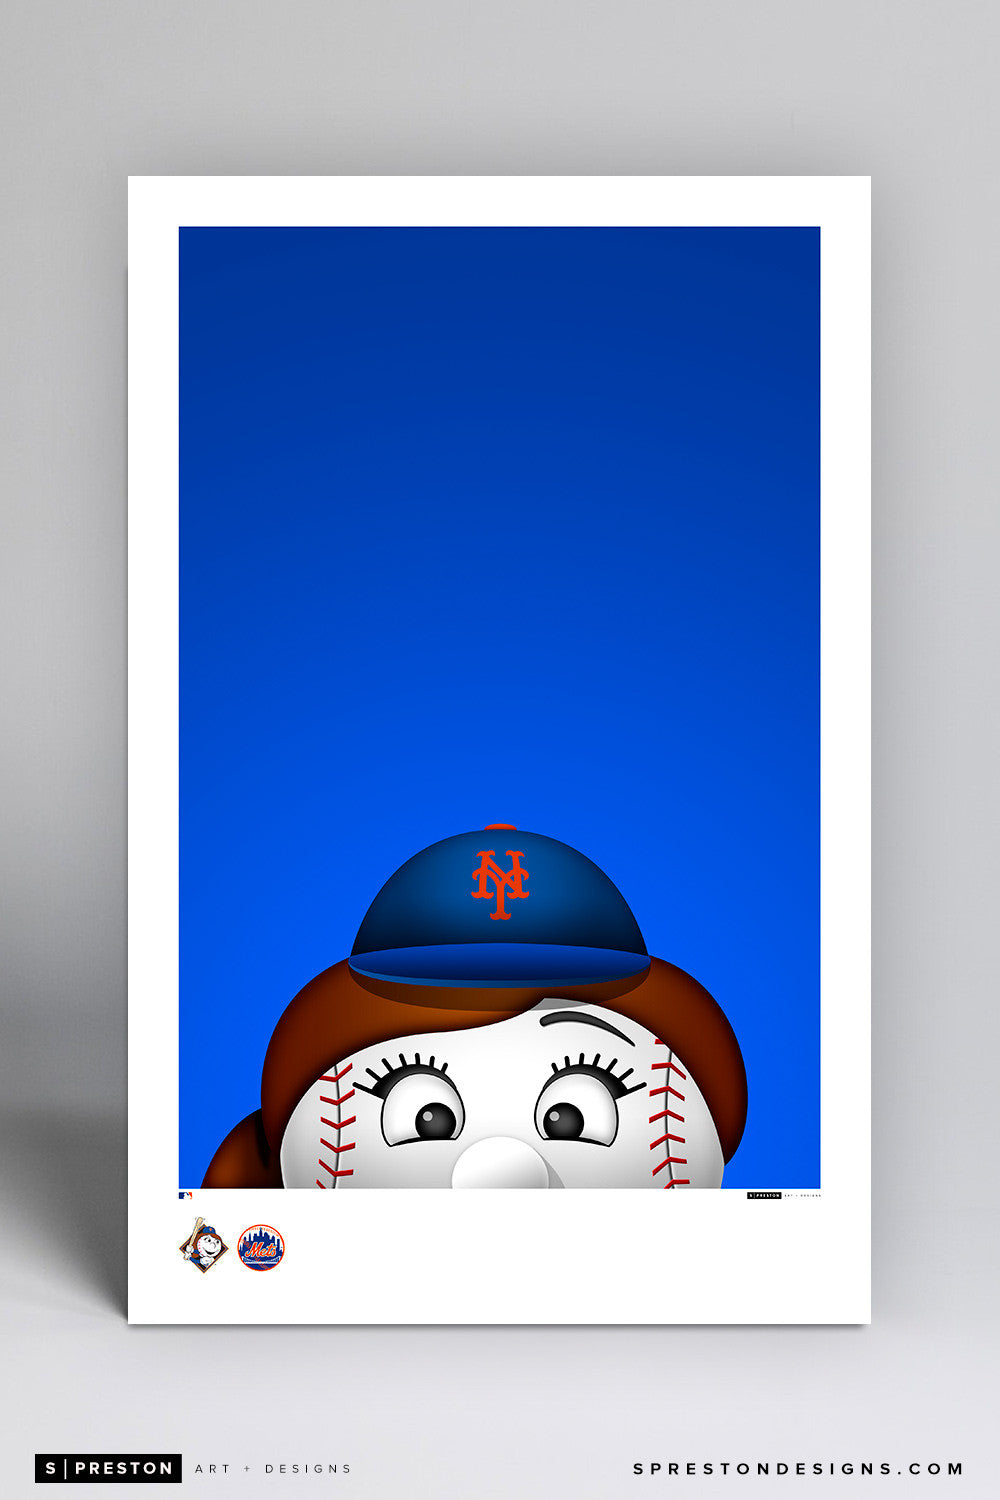 Minimalist Mrs. Met Art Poster Art Poster - New York Mets - S. Preston Art + Designs